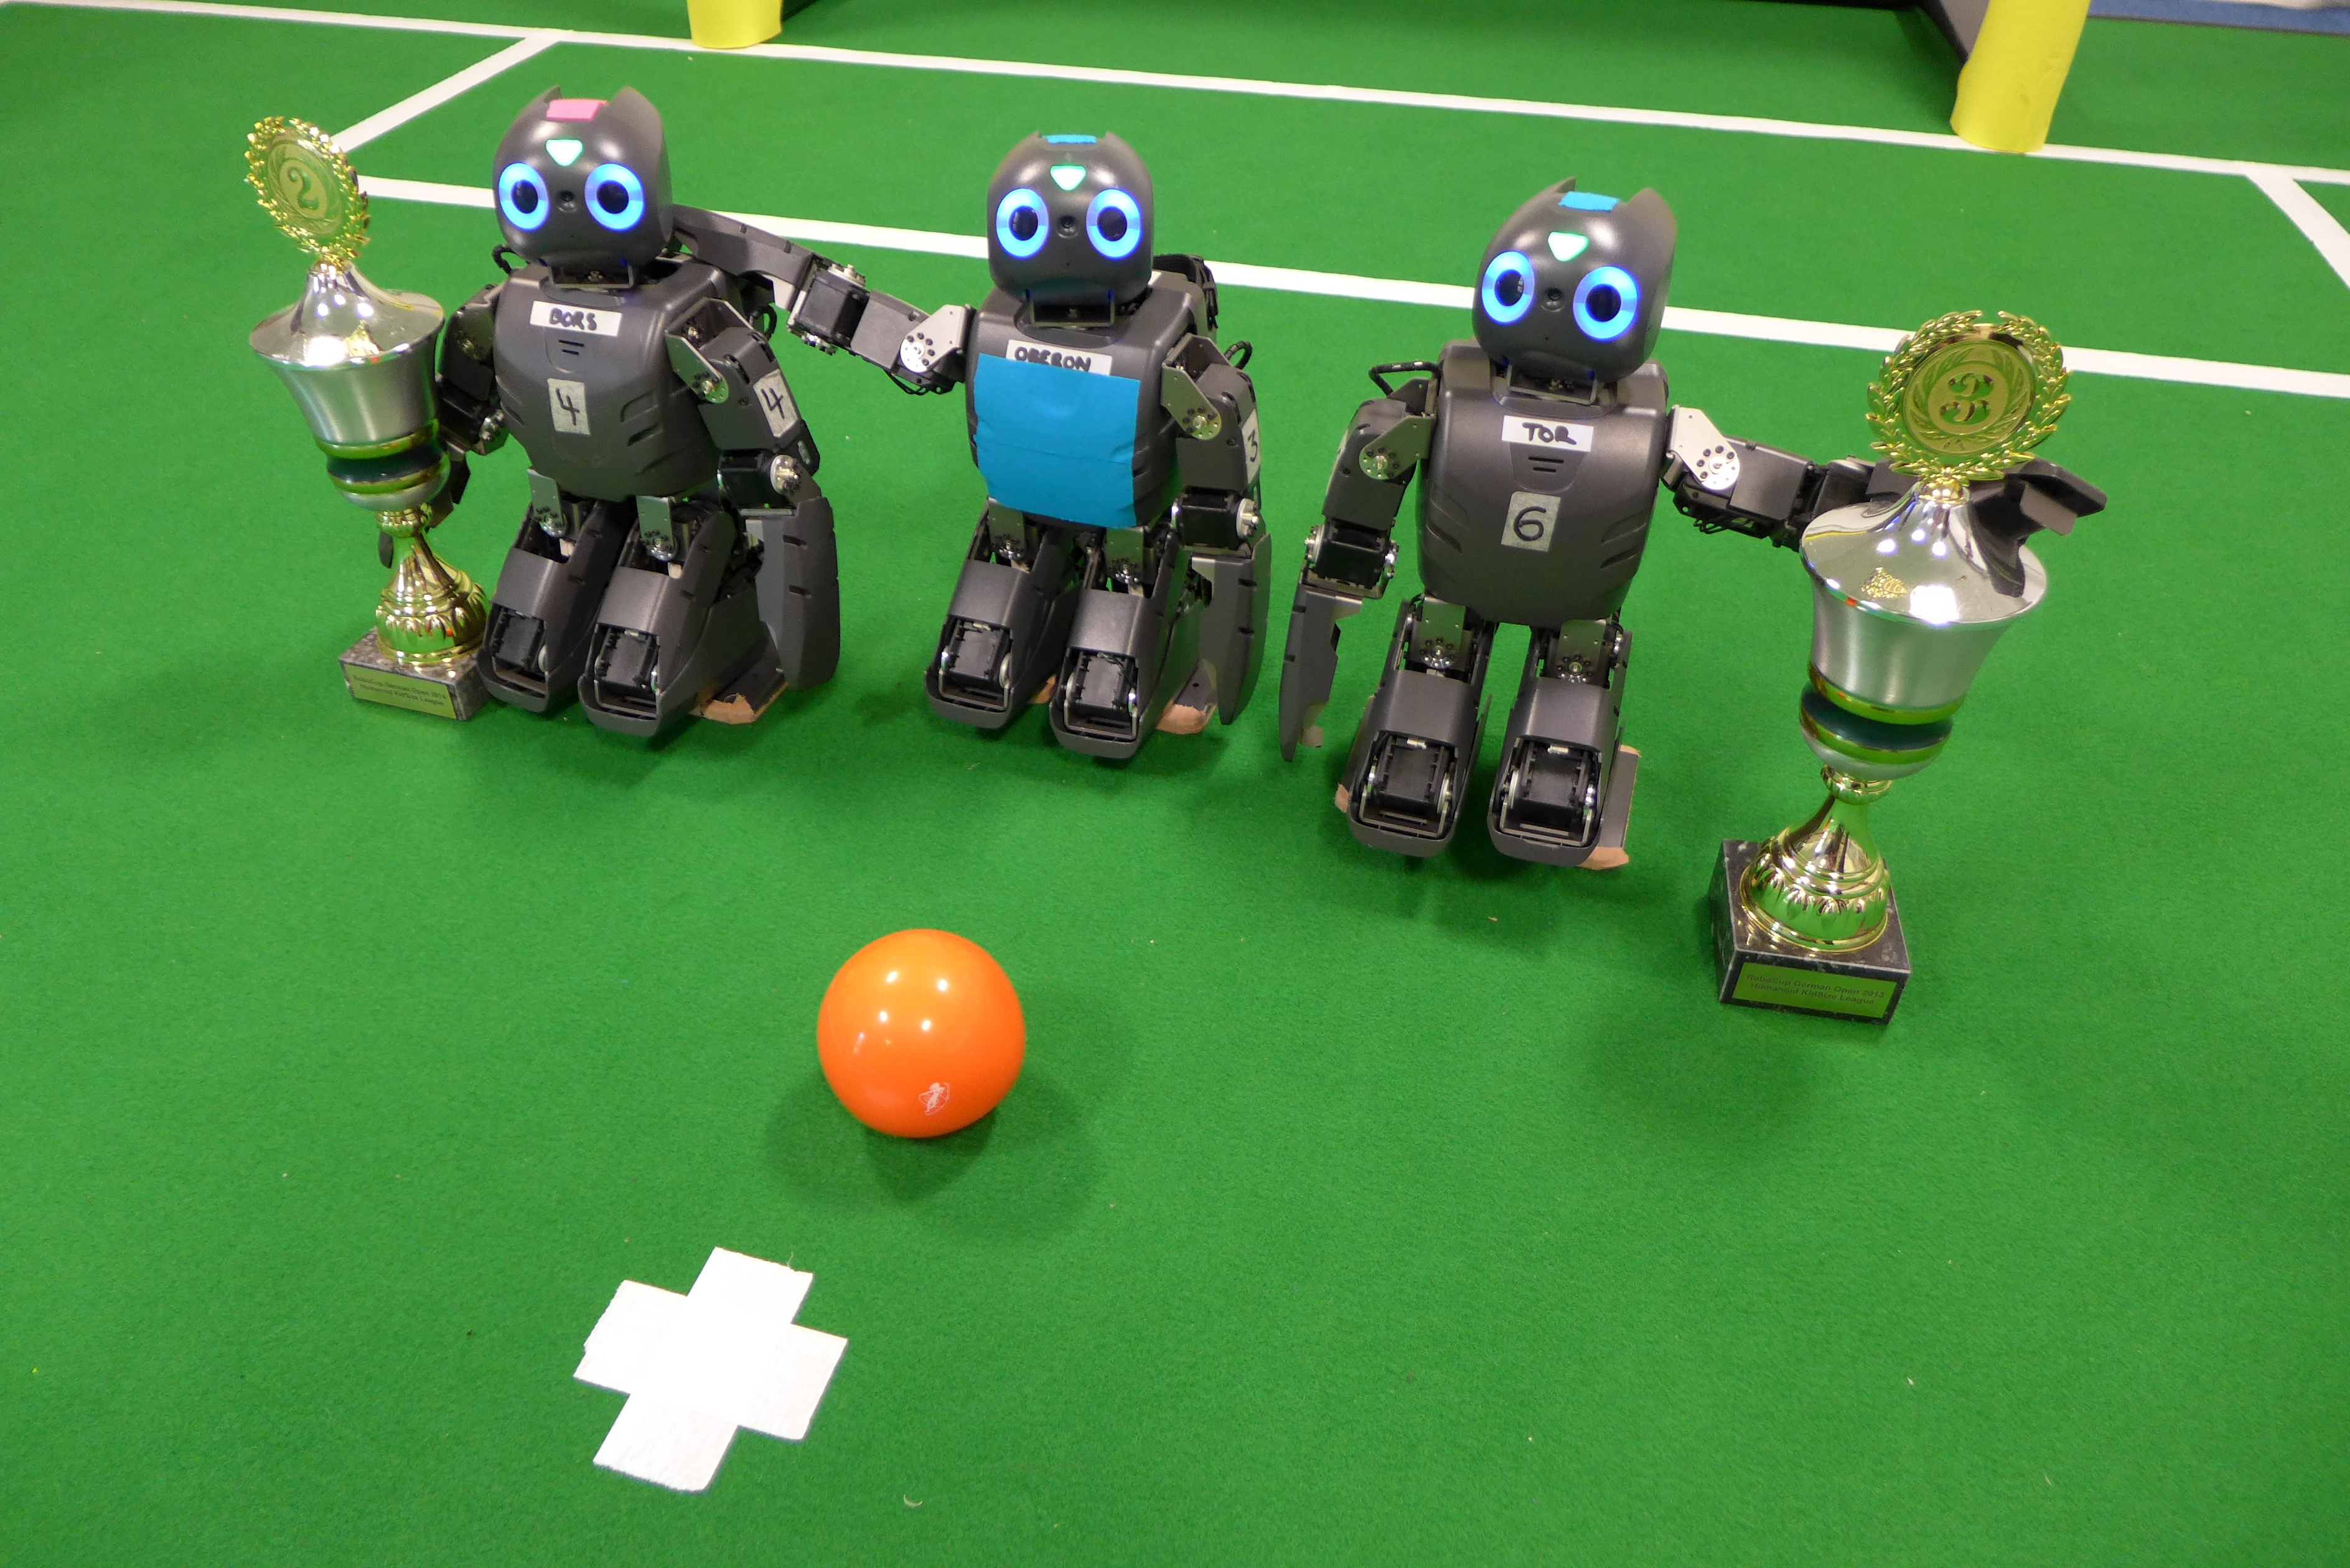 Researchers Want Robots to Play in the World Cup by 2050 ...